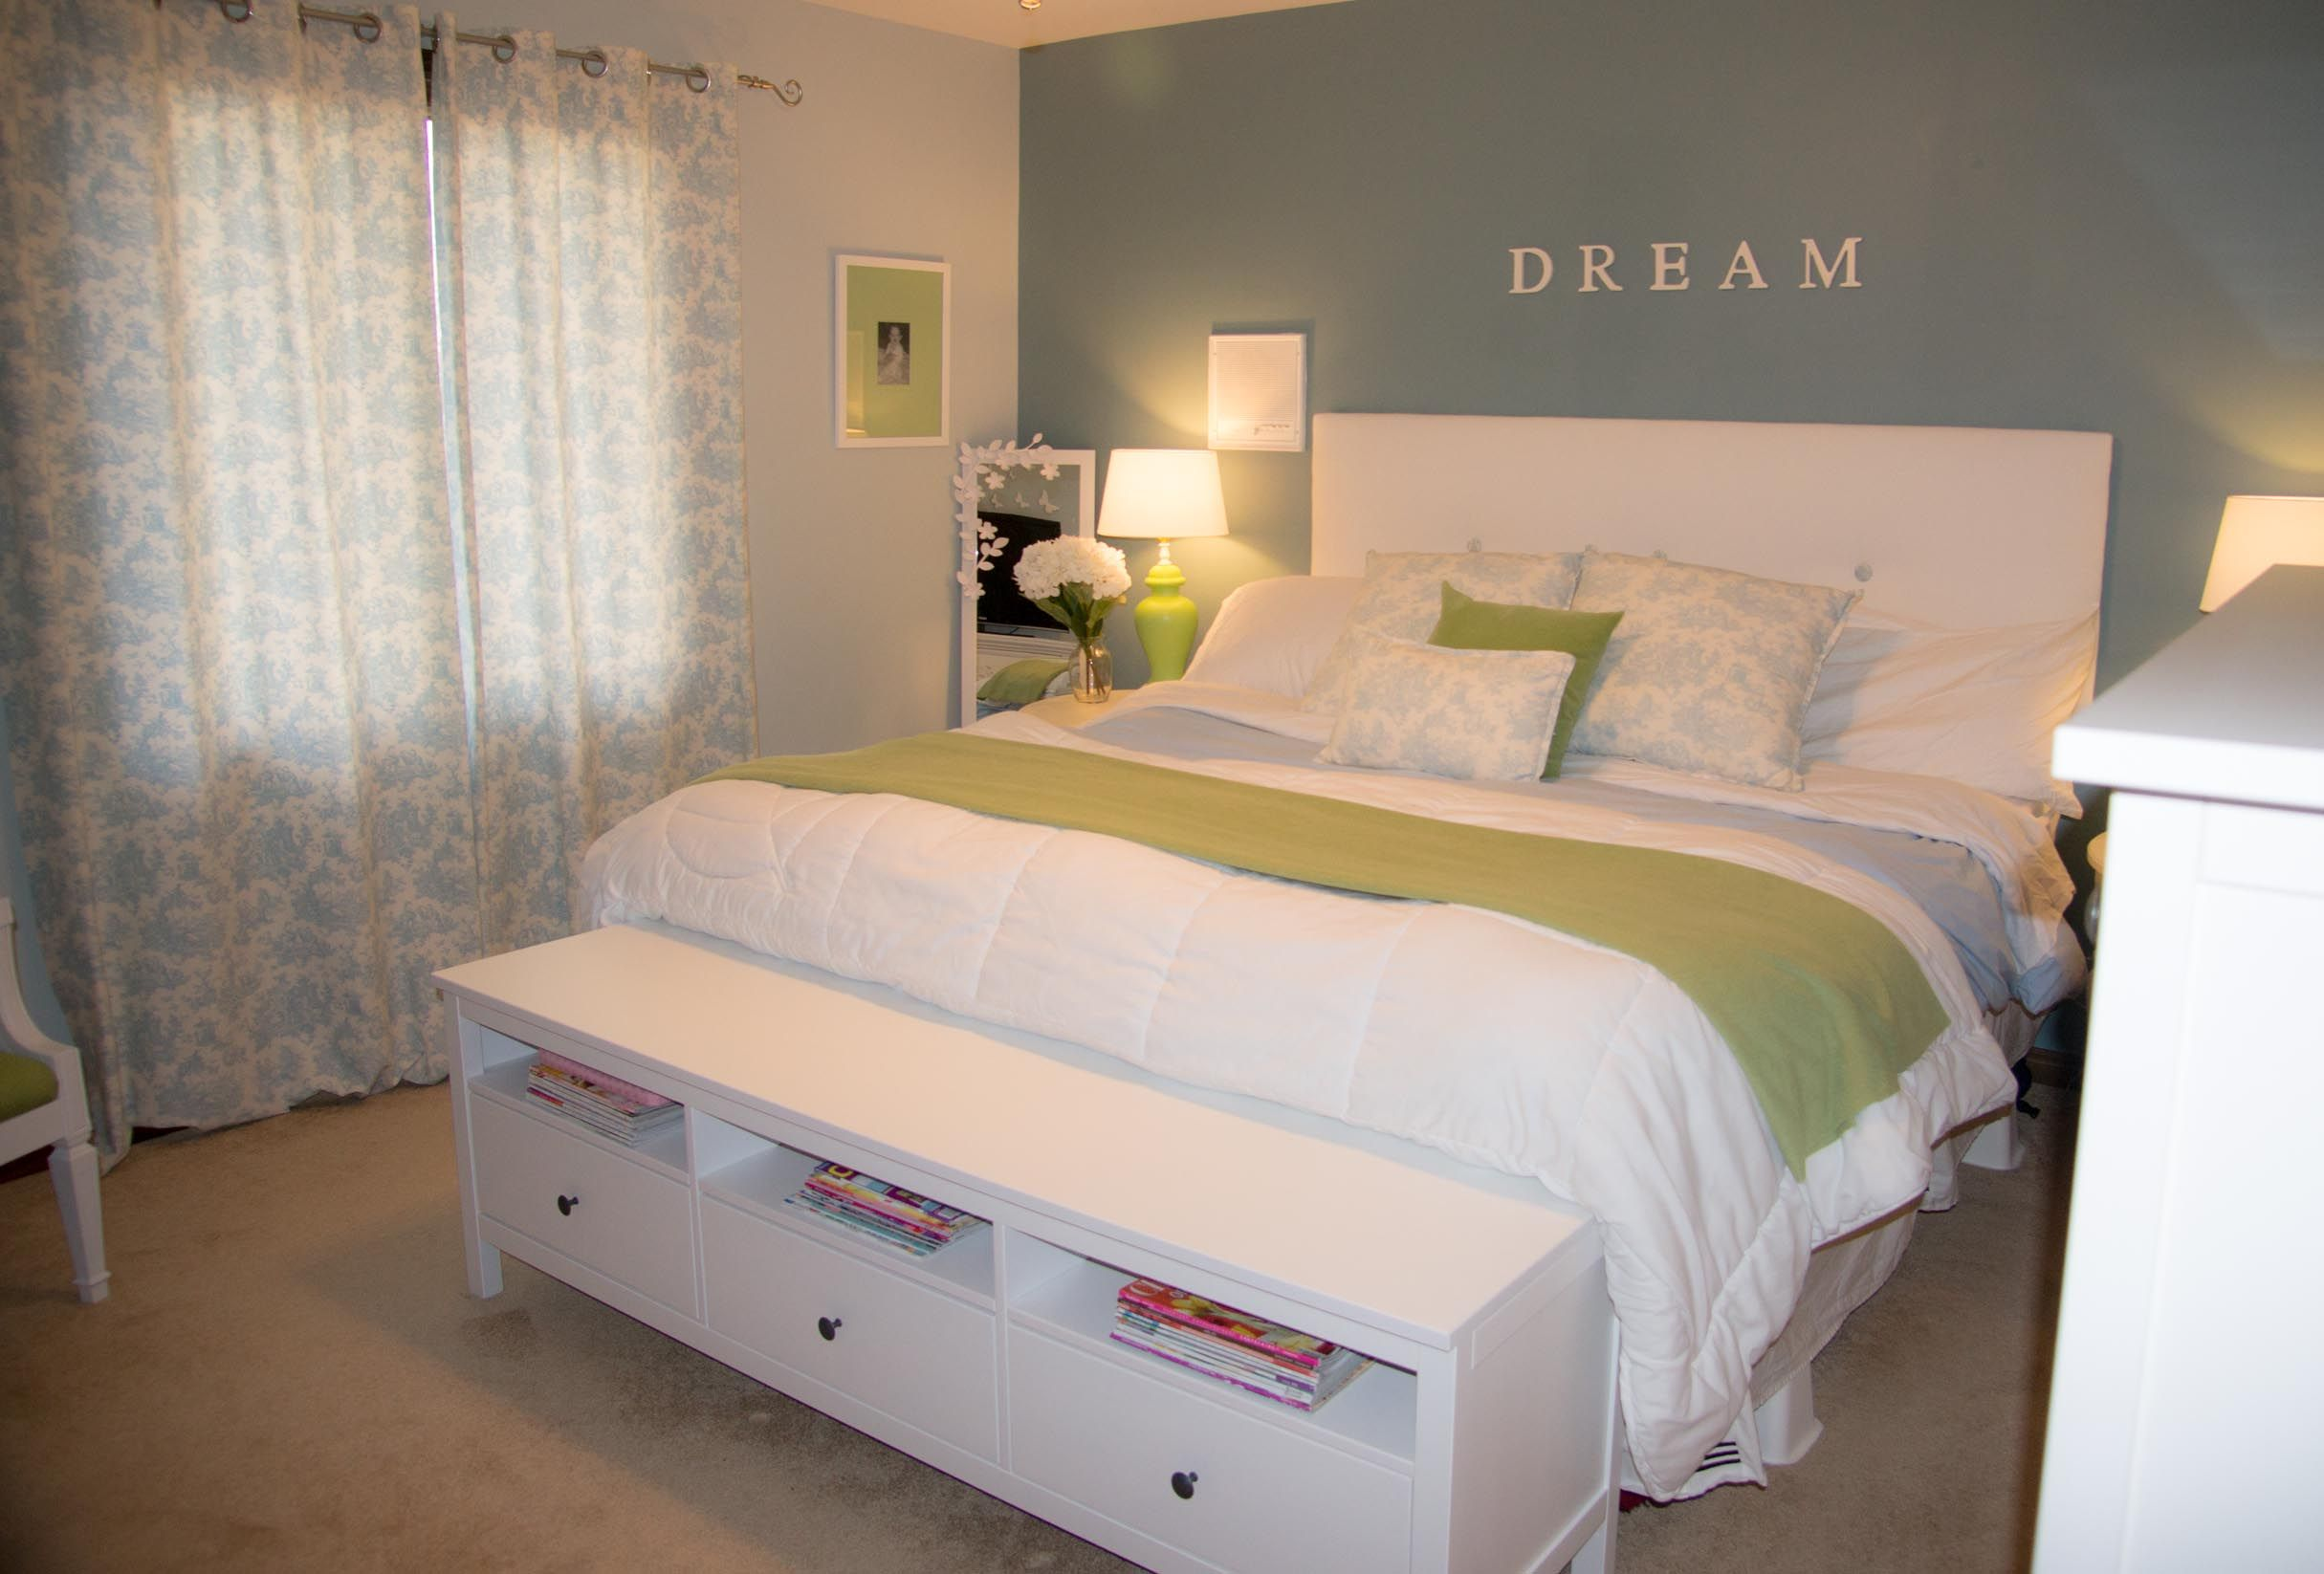 Bedrooms, Master Bedroom And Budgeting